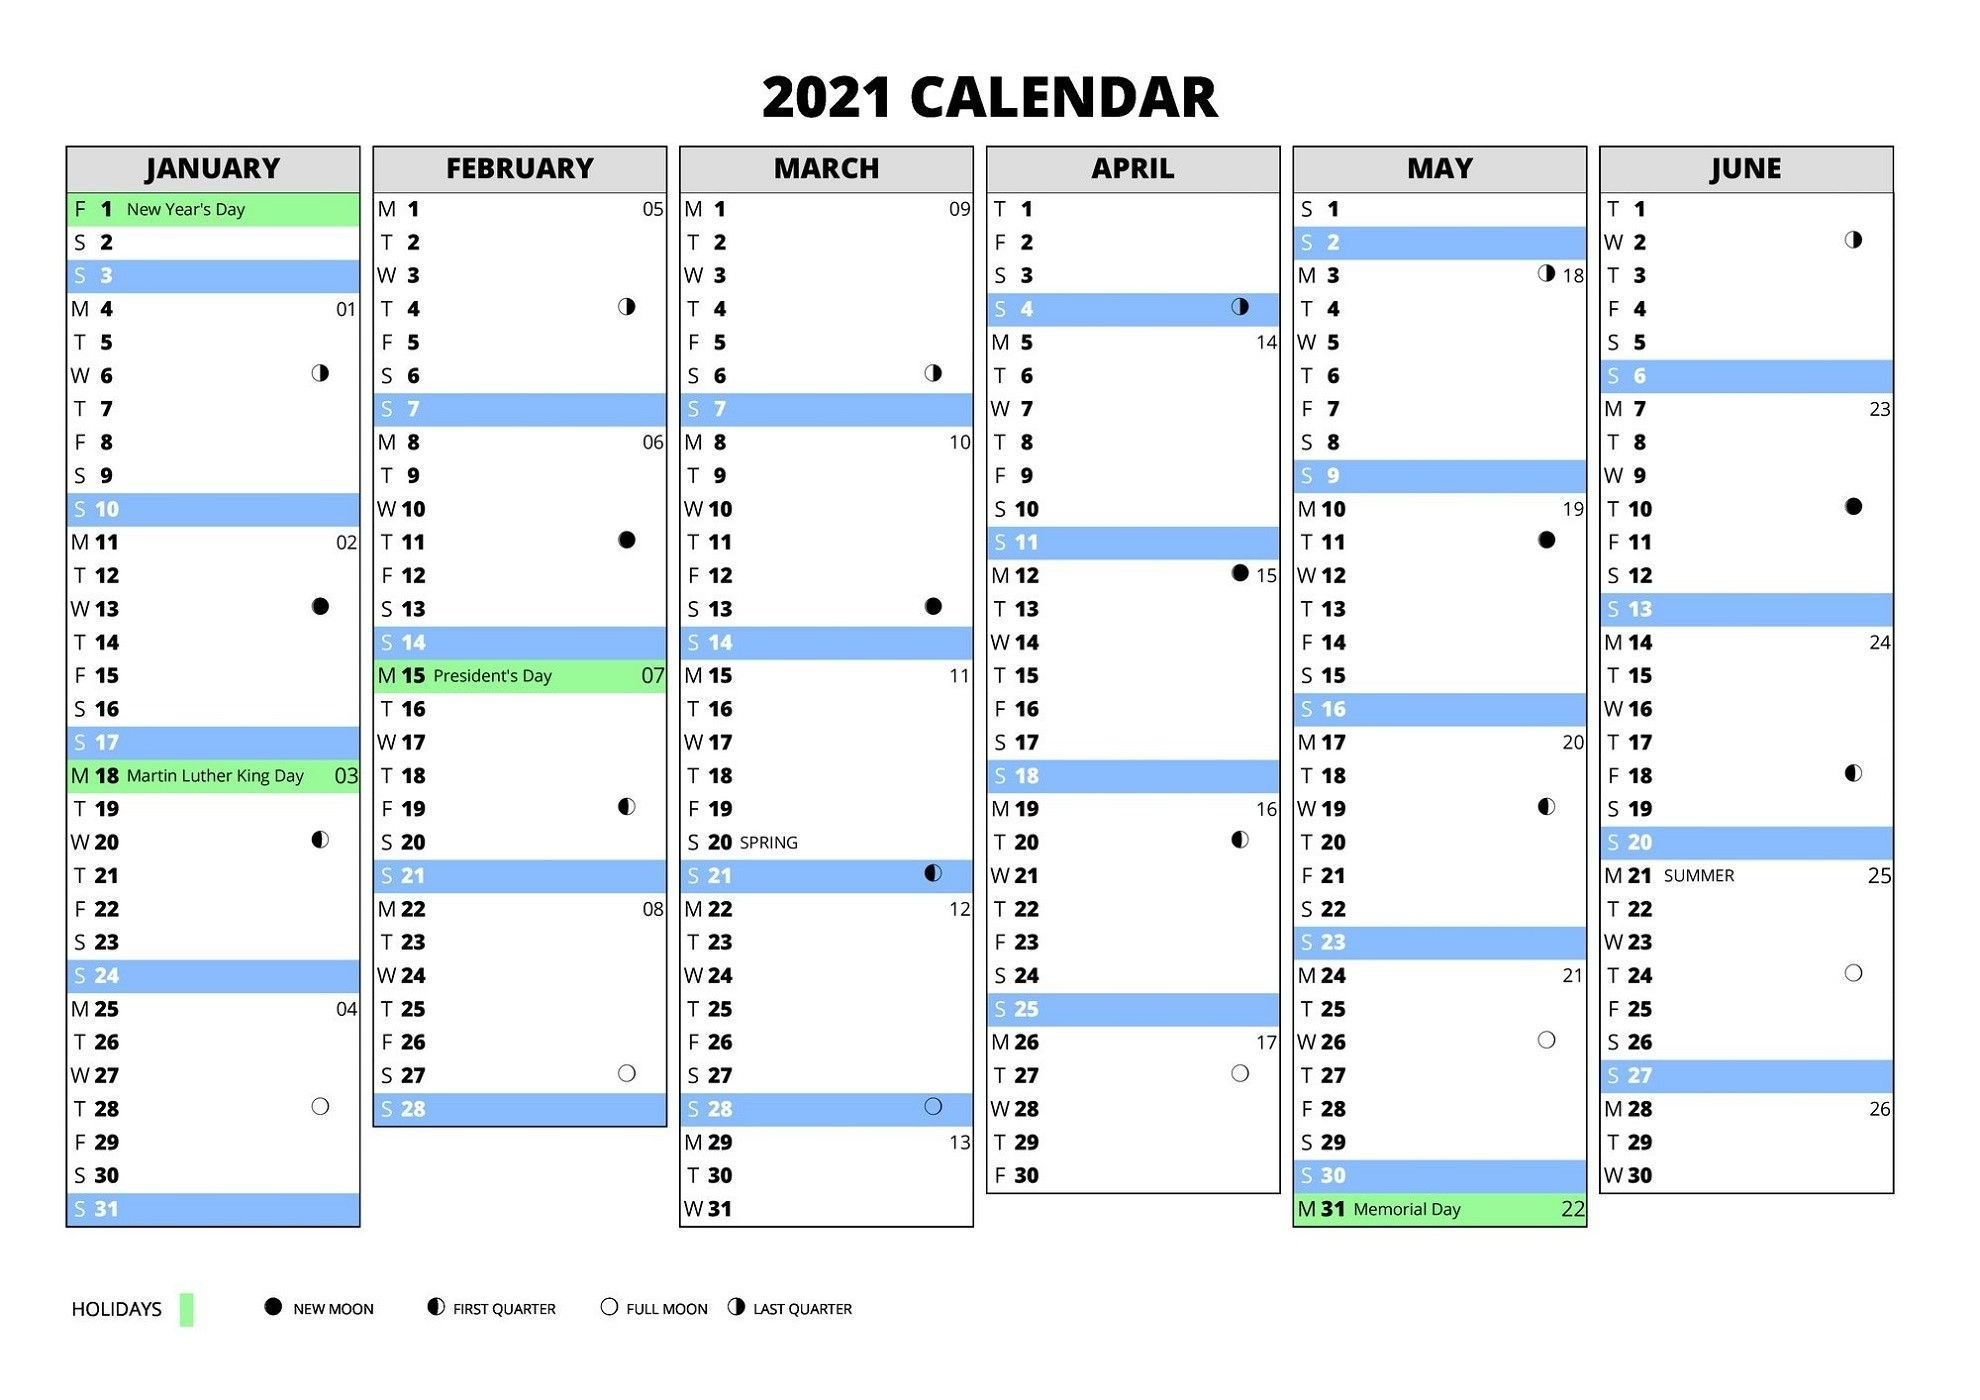 Catch Excel Calendar With Weeks 2021